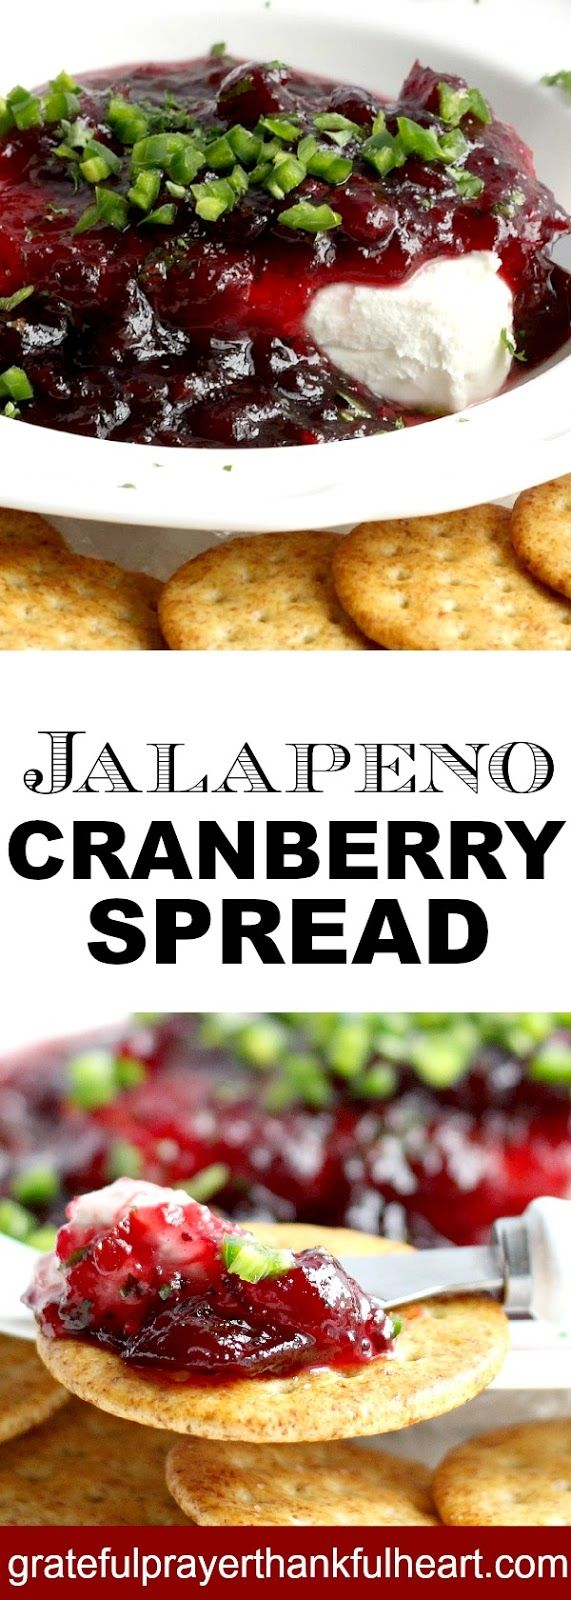 Looking for something for your New Year's Eve celebration? My young friend, Sarah, shared her recipe for a very easy, very pretty and very delicious sweet and spicy appetizer. I watched her husband make it recently and everyone at the table commented how much they enjoyed it. Jalapeno Cranberry Spread has now become a staple...Read More